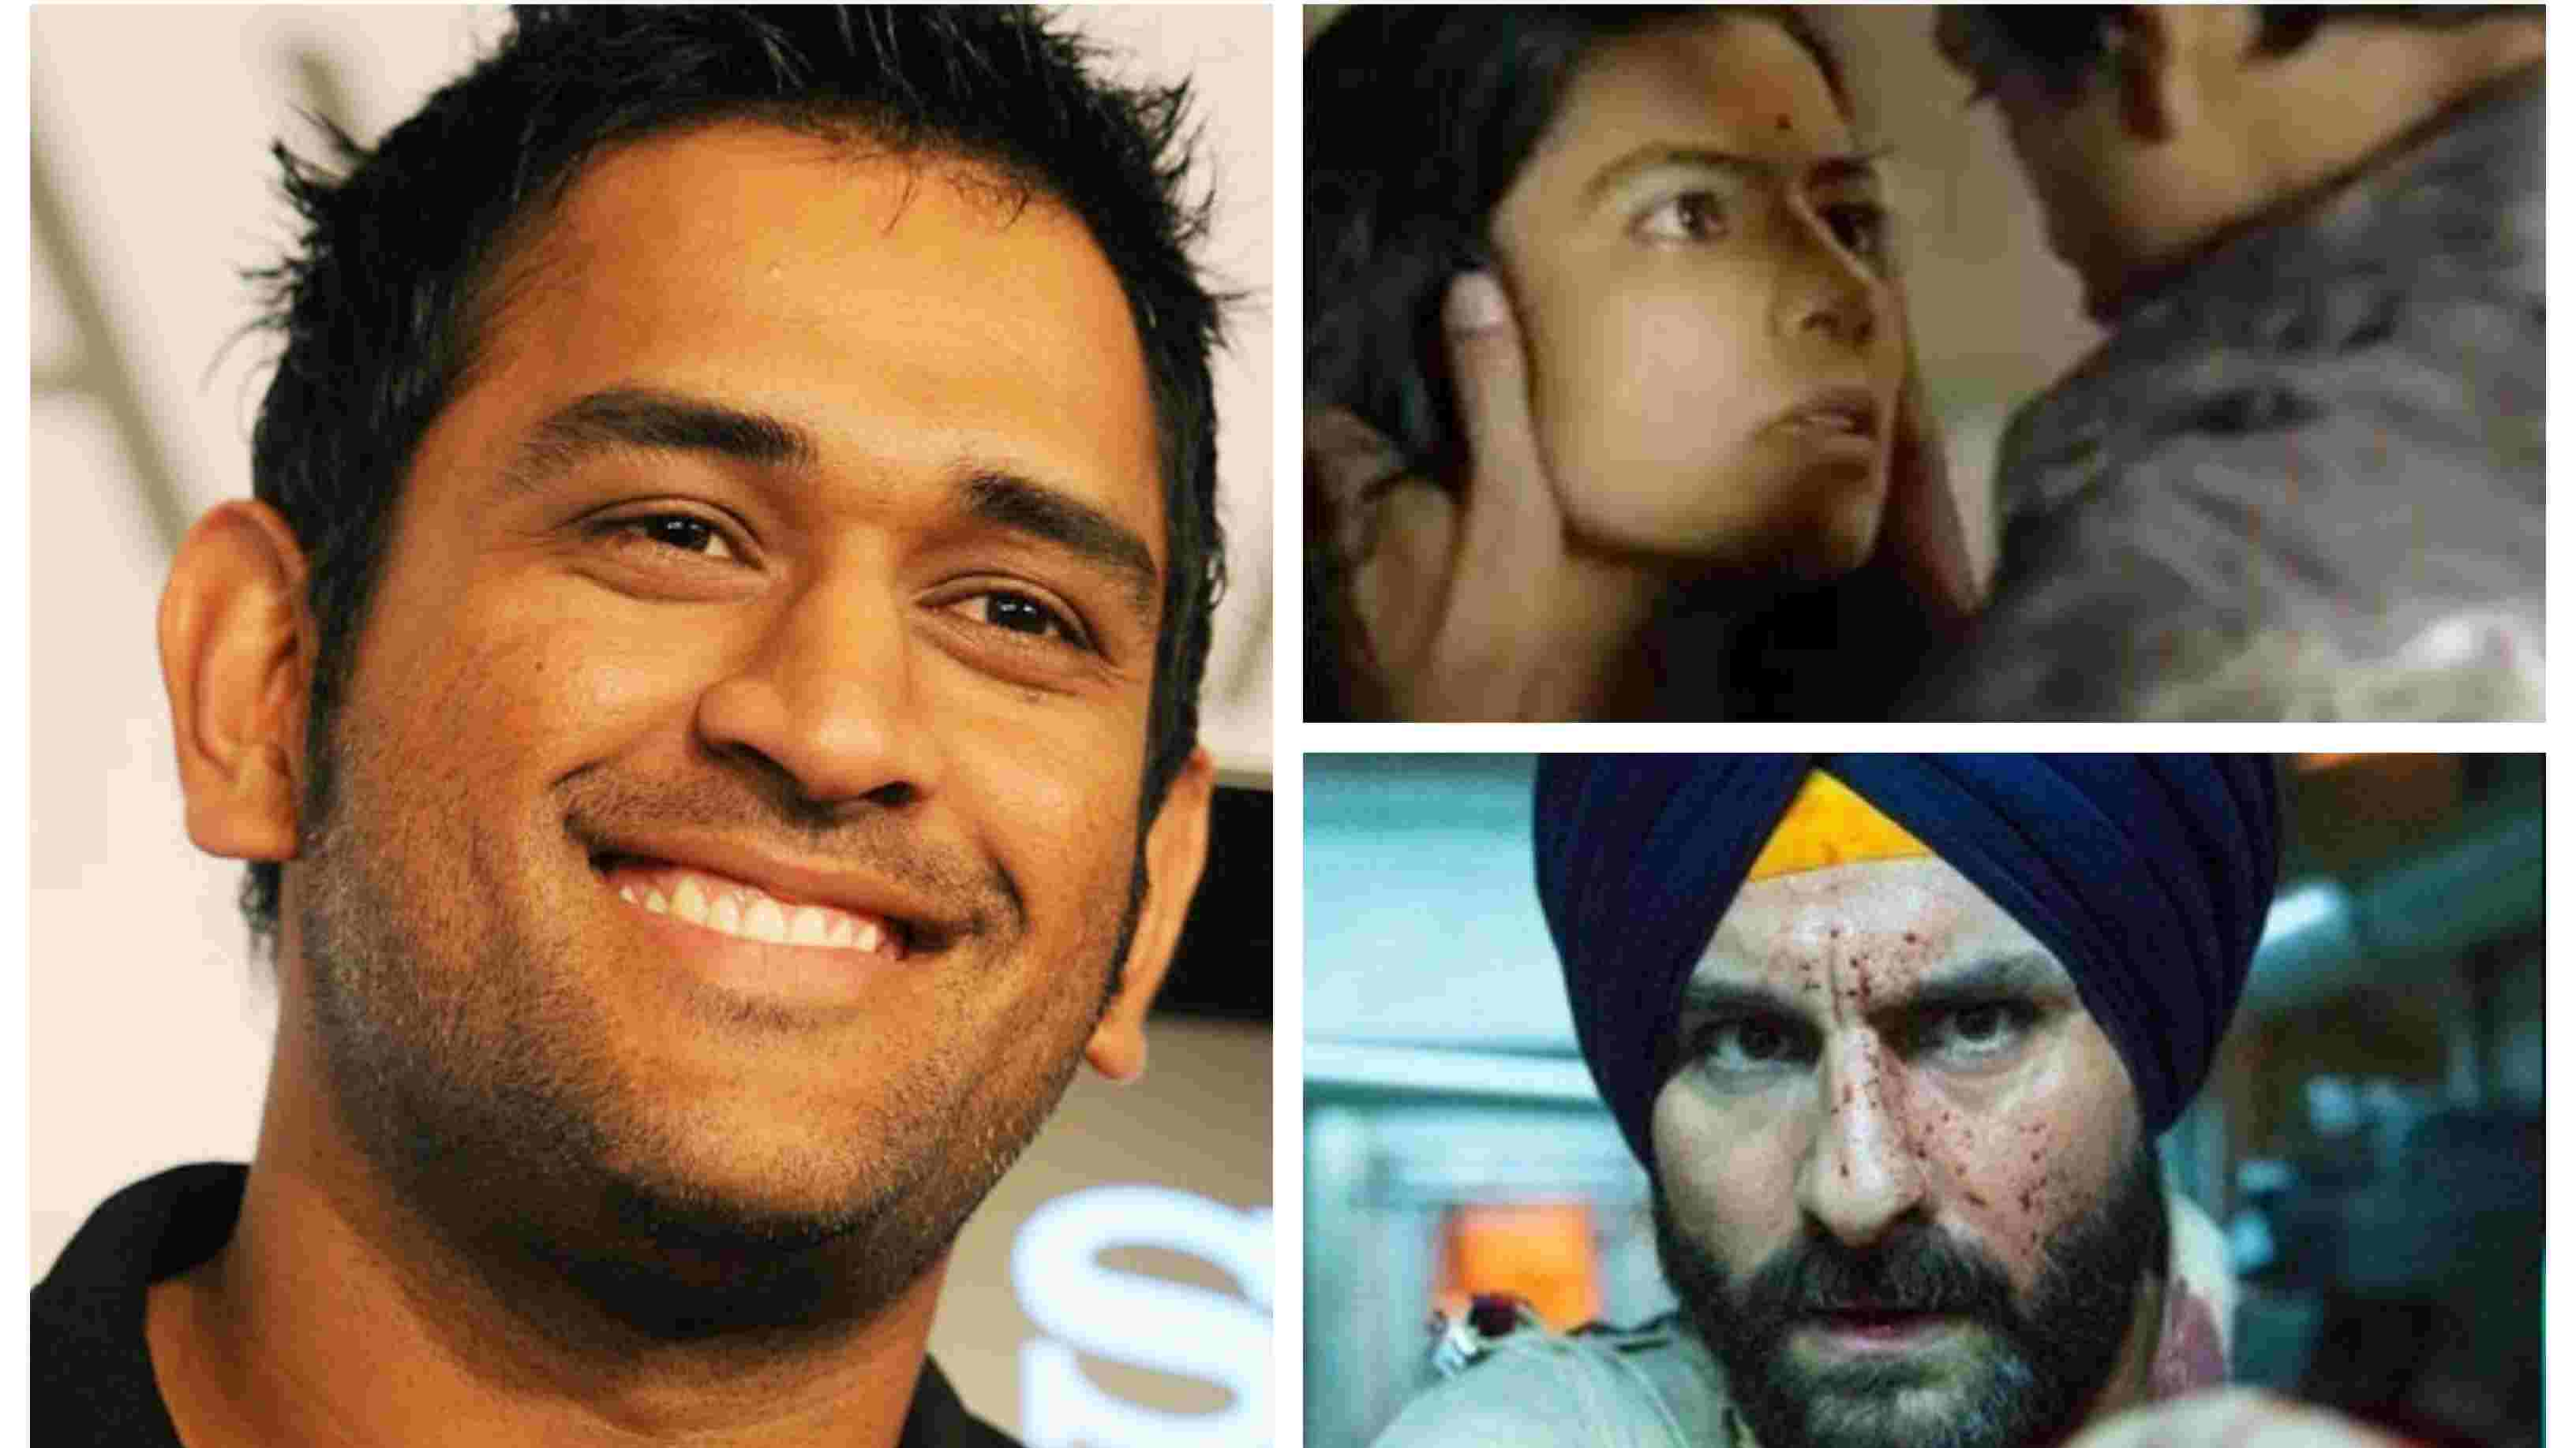 MS Dhoni awestruck by a character from web series 'Sacred Games'